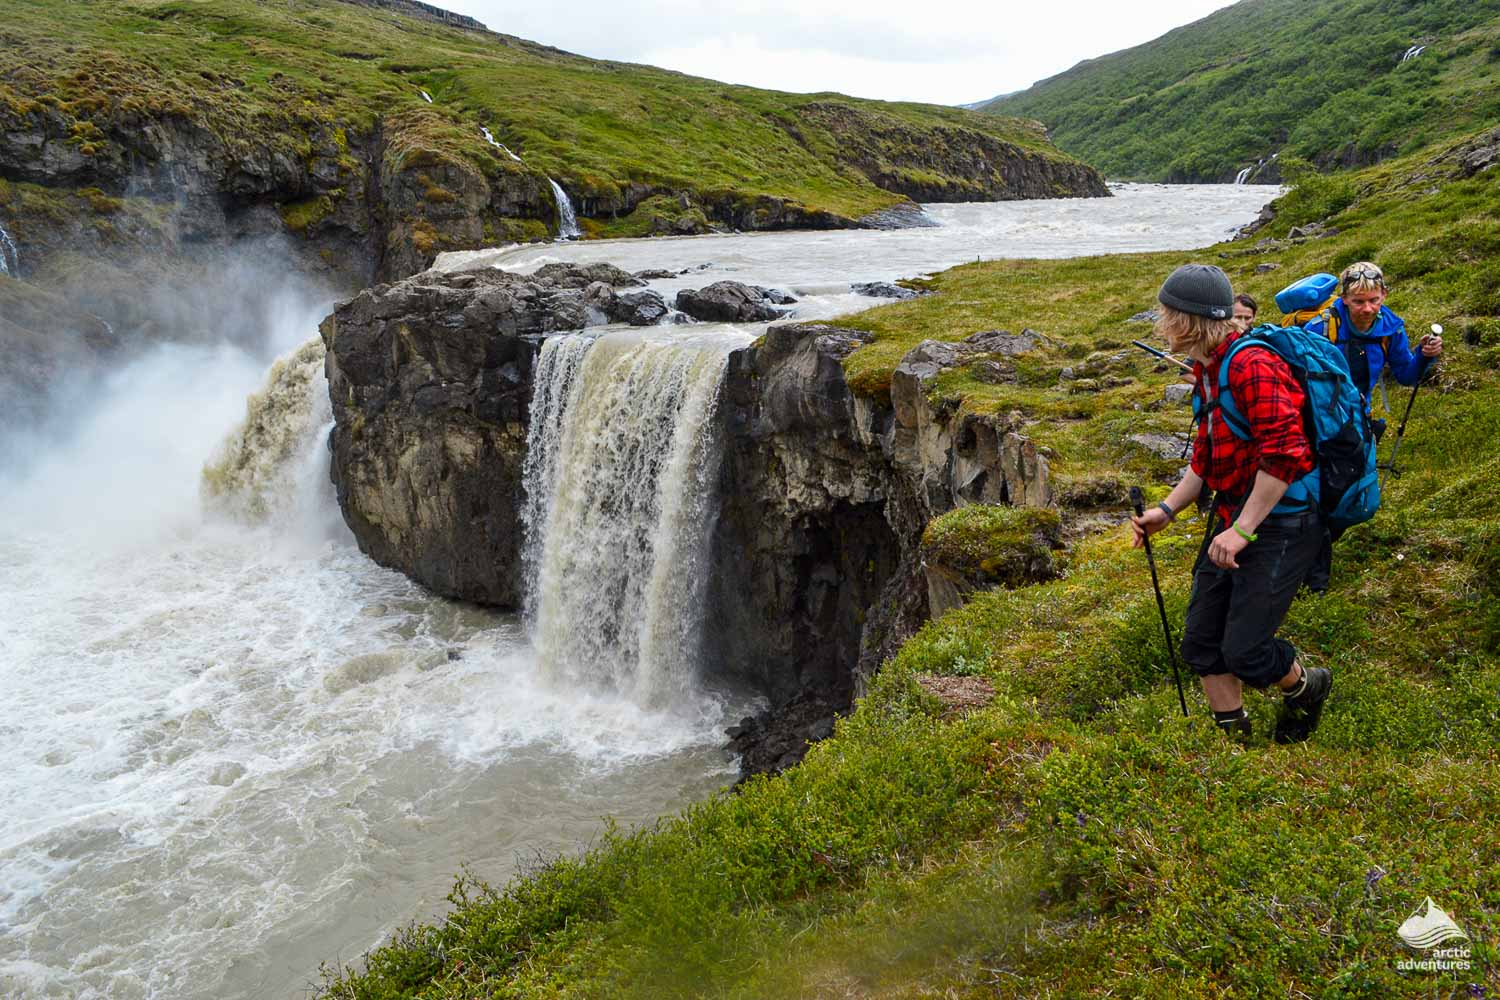 People hiking near waterfall in Iceland